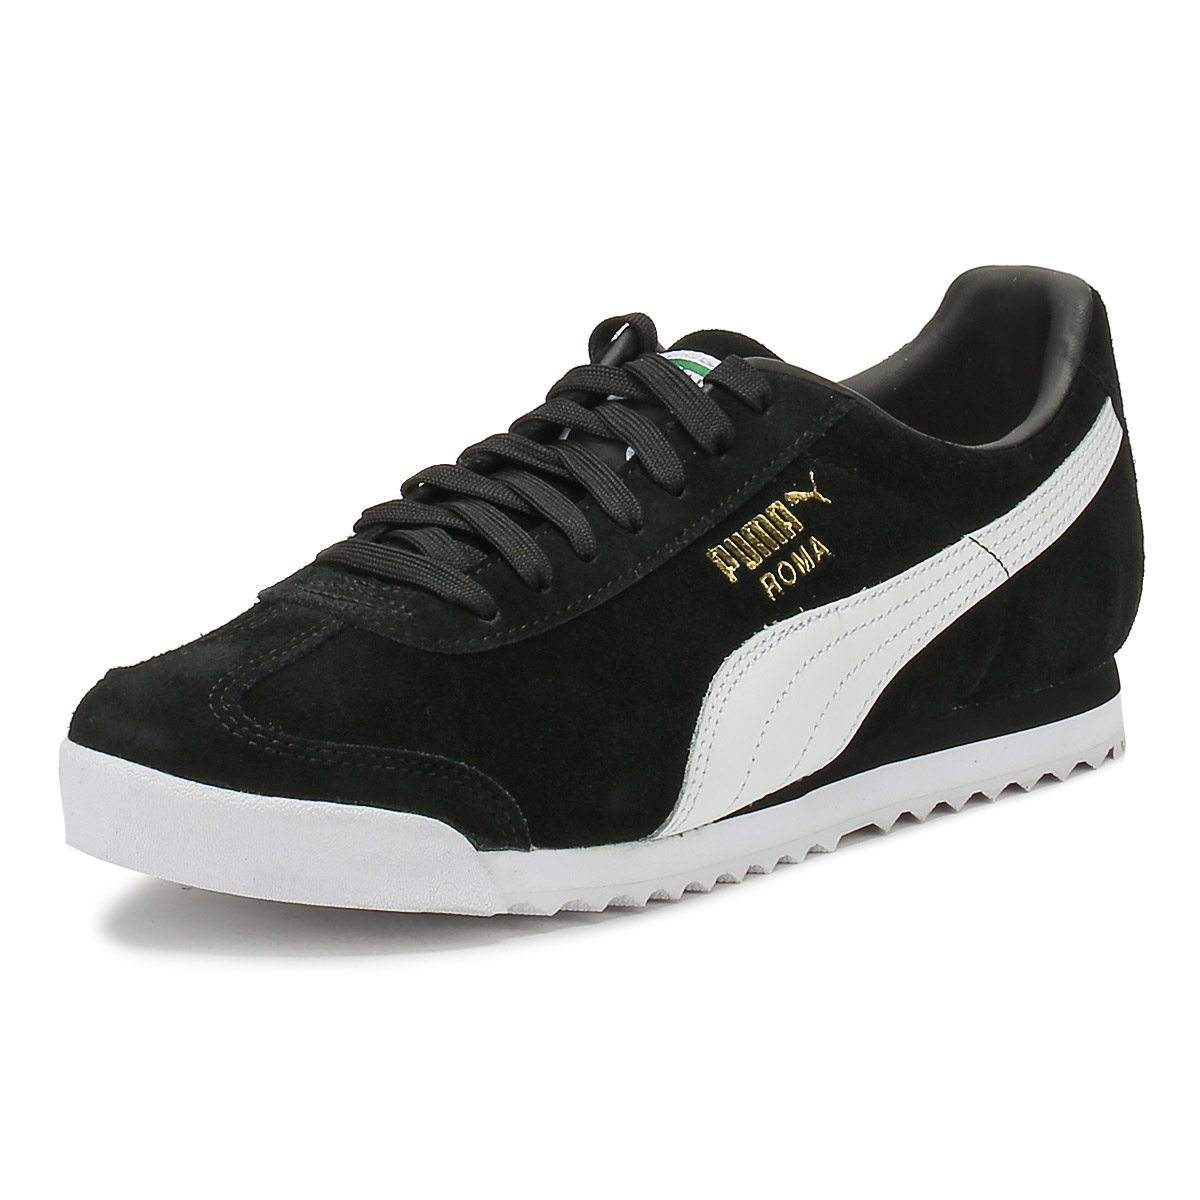 b6dd43462df0 Details about PUMA Mens Trainers Black Suede Roma Lace Up Sports Casual  Shoes